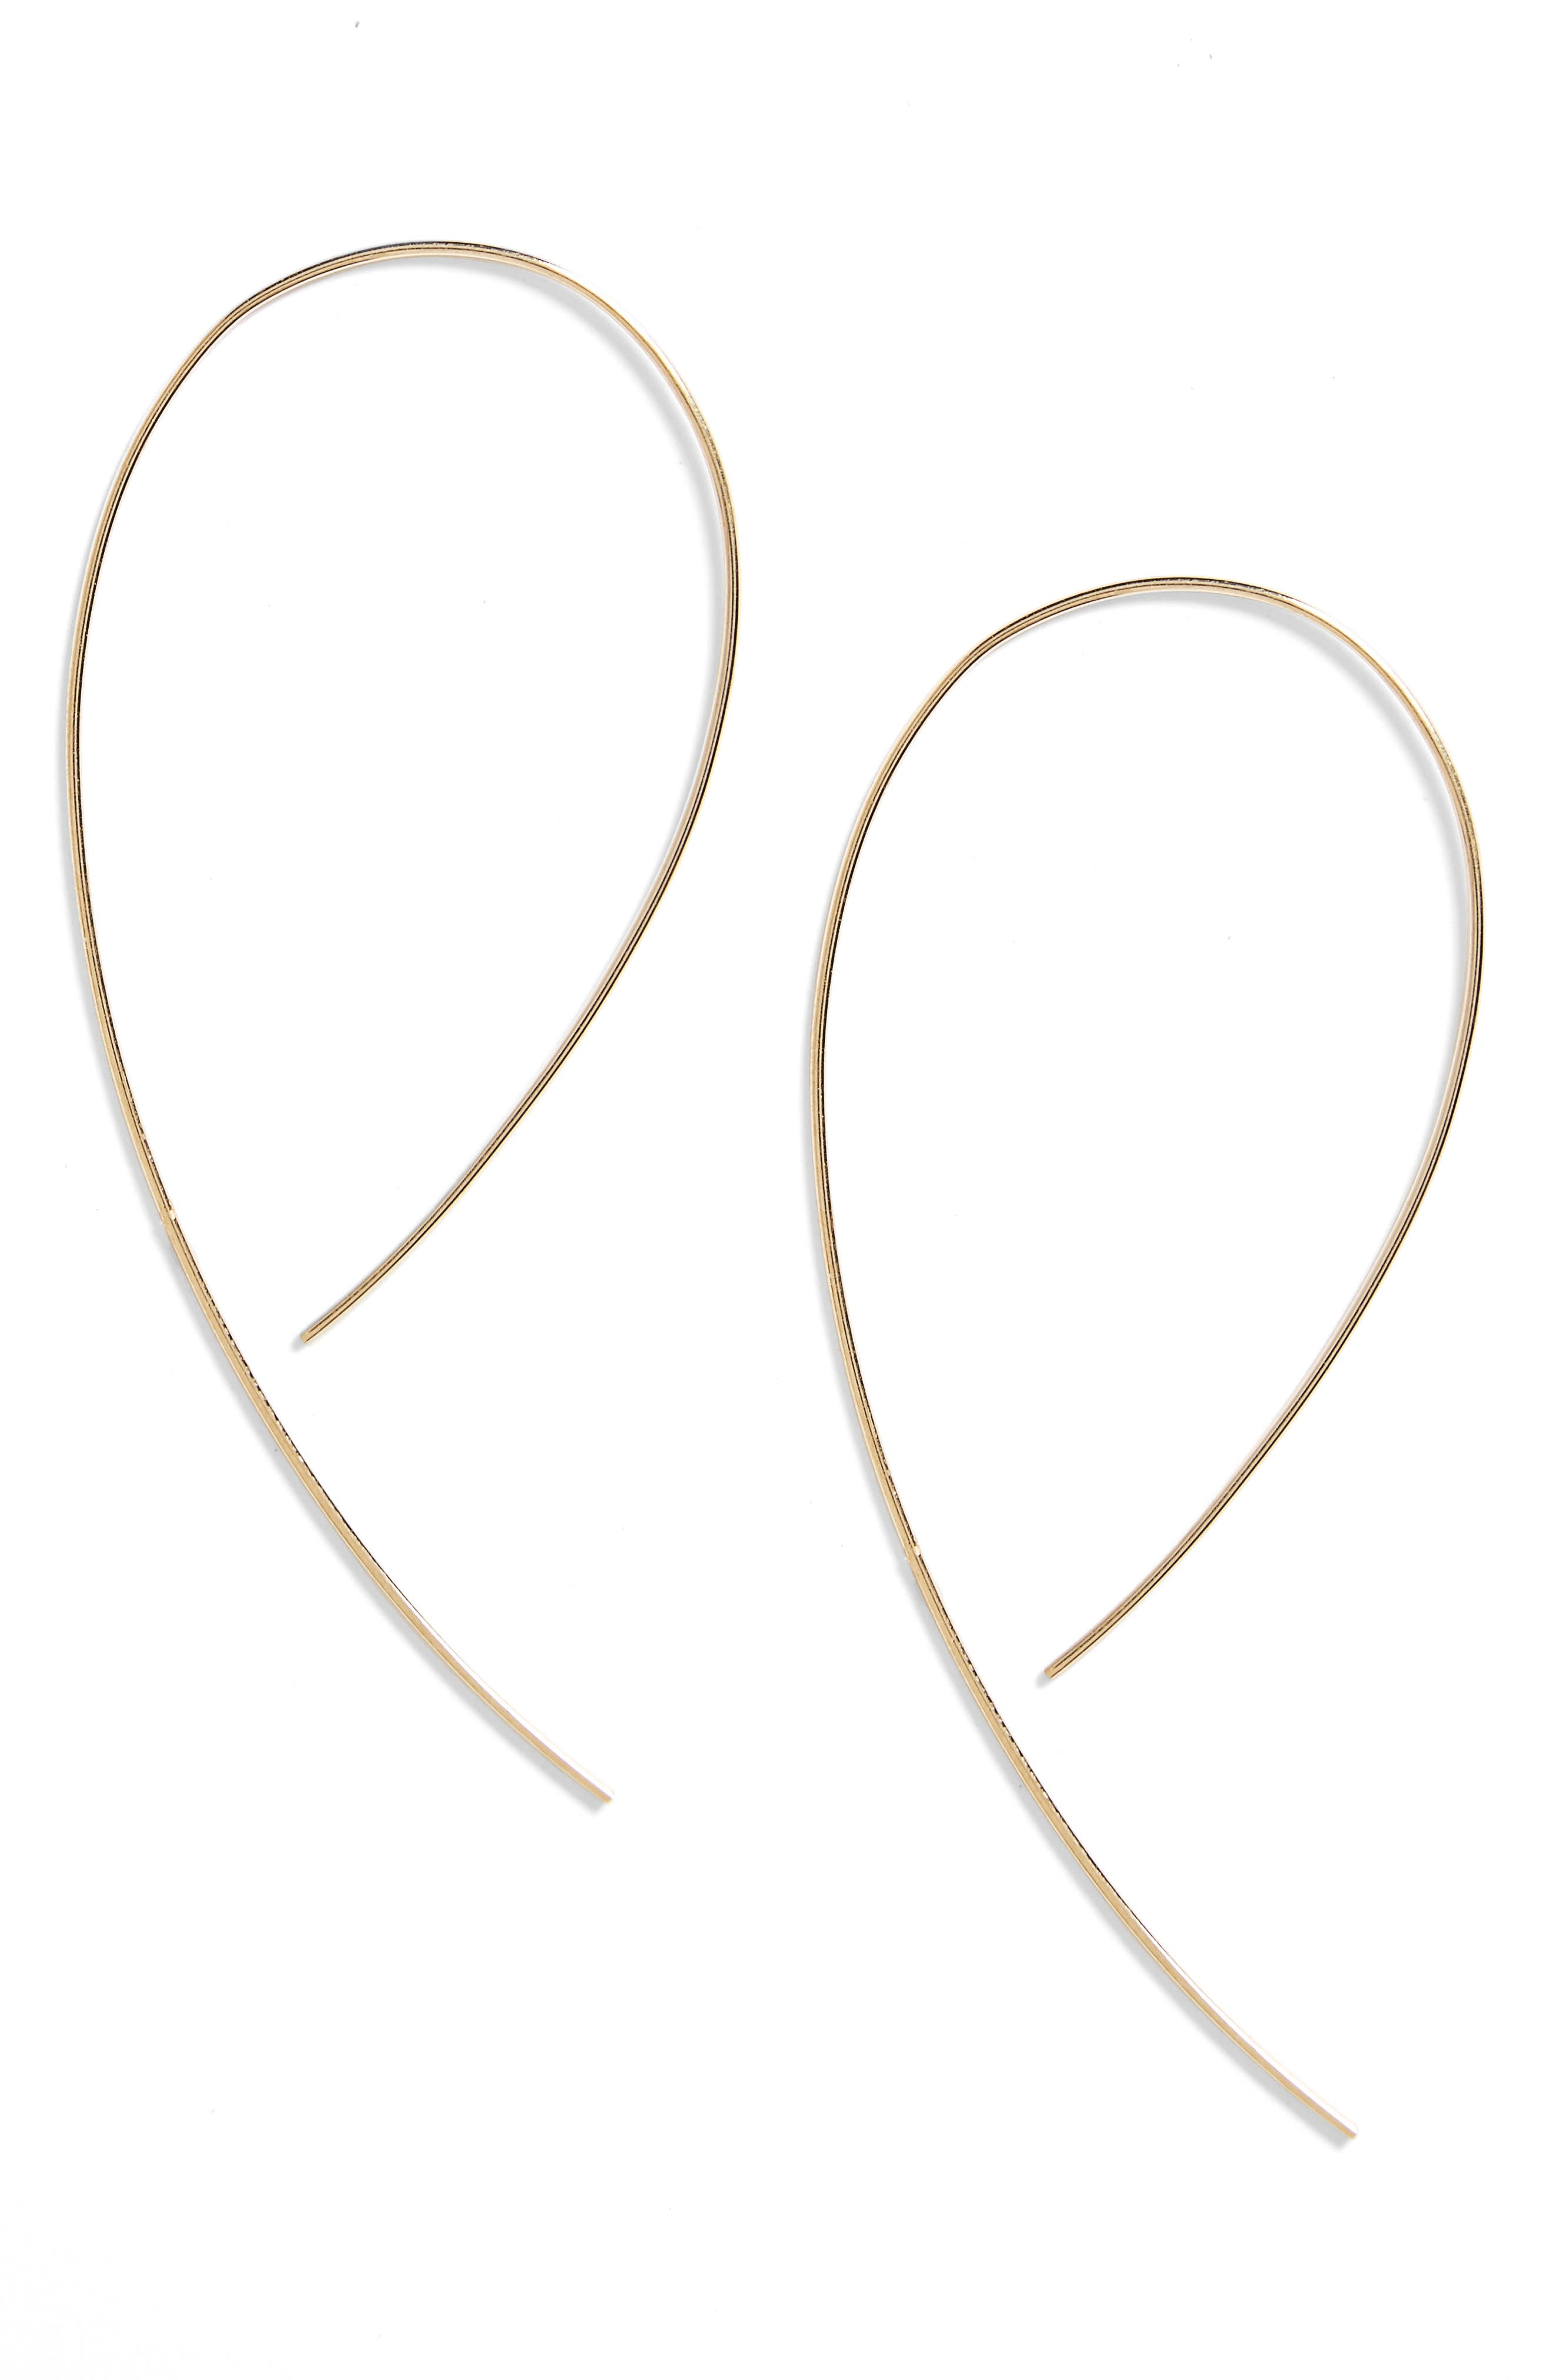 'Hooked on Hoop' Earrings,                             Alternate thumbnail 2, color,                             YELLOW GOLD